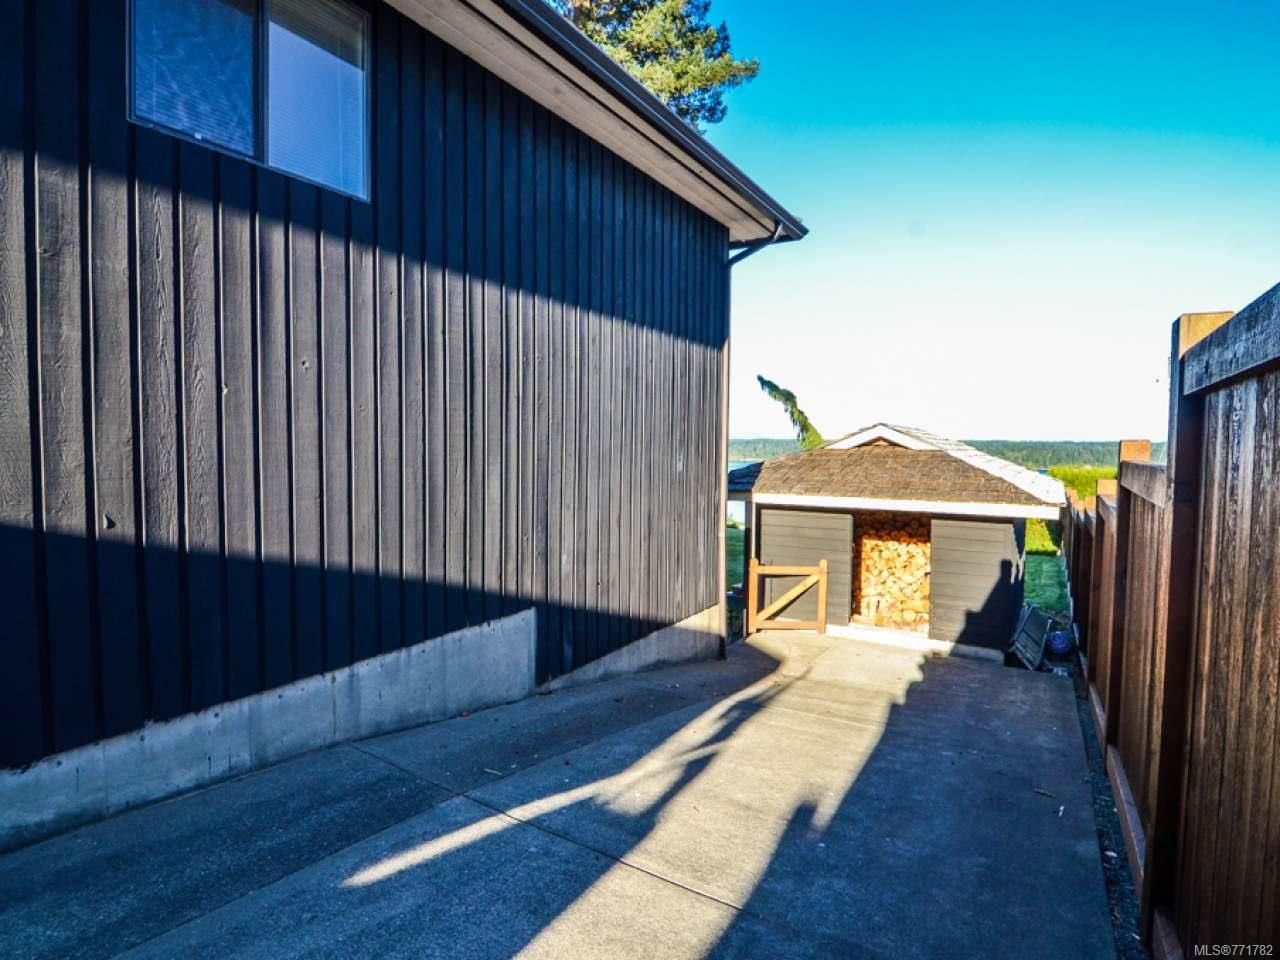 Photo 45: Photos: 451 S McLean St in CAMPBELL RIVER: CR Campbell River Central House for sale (Campbell River)  : MLS®# 771782